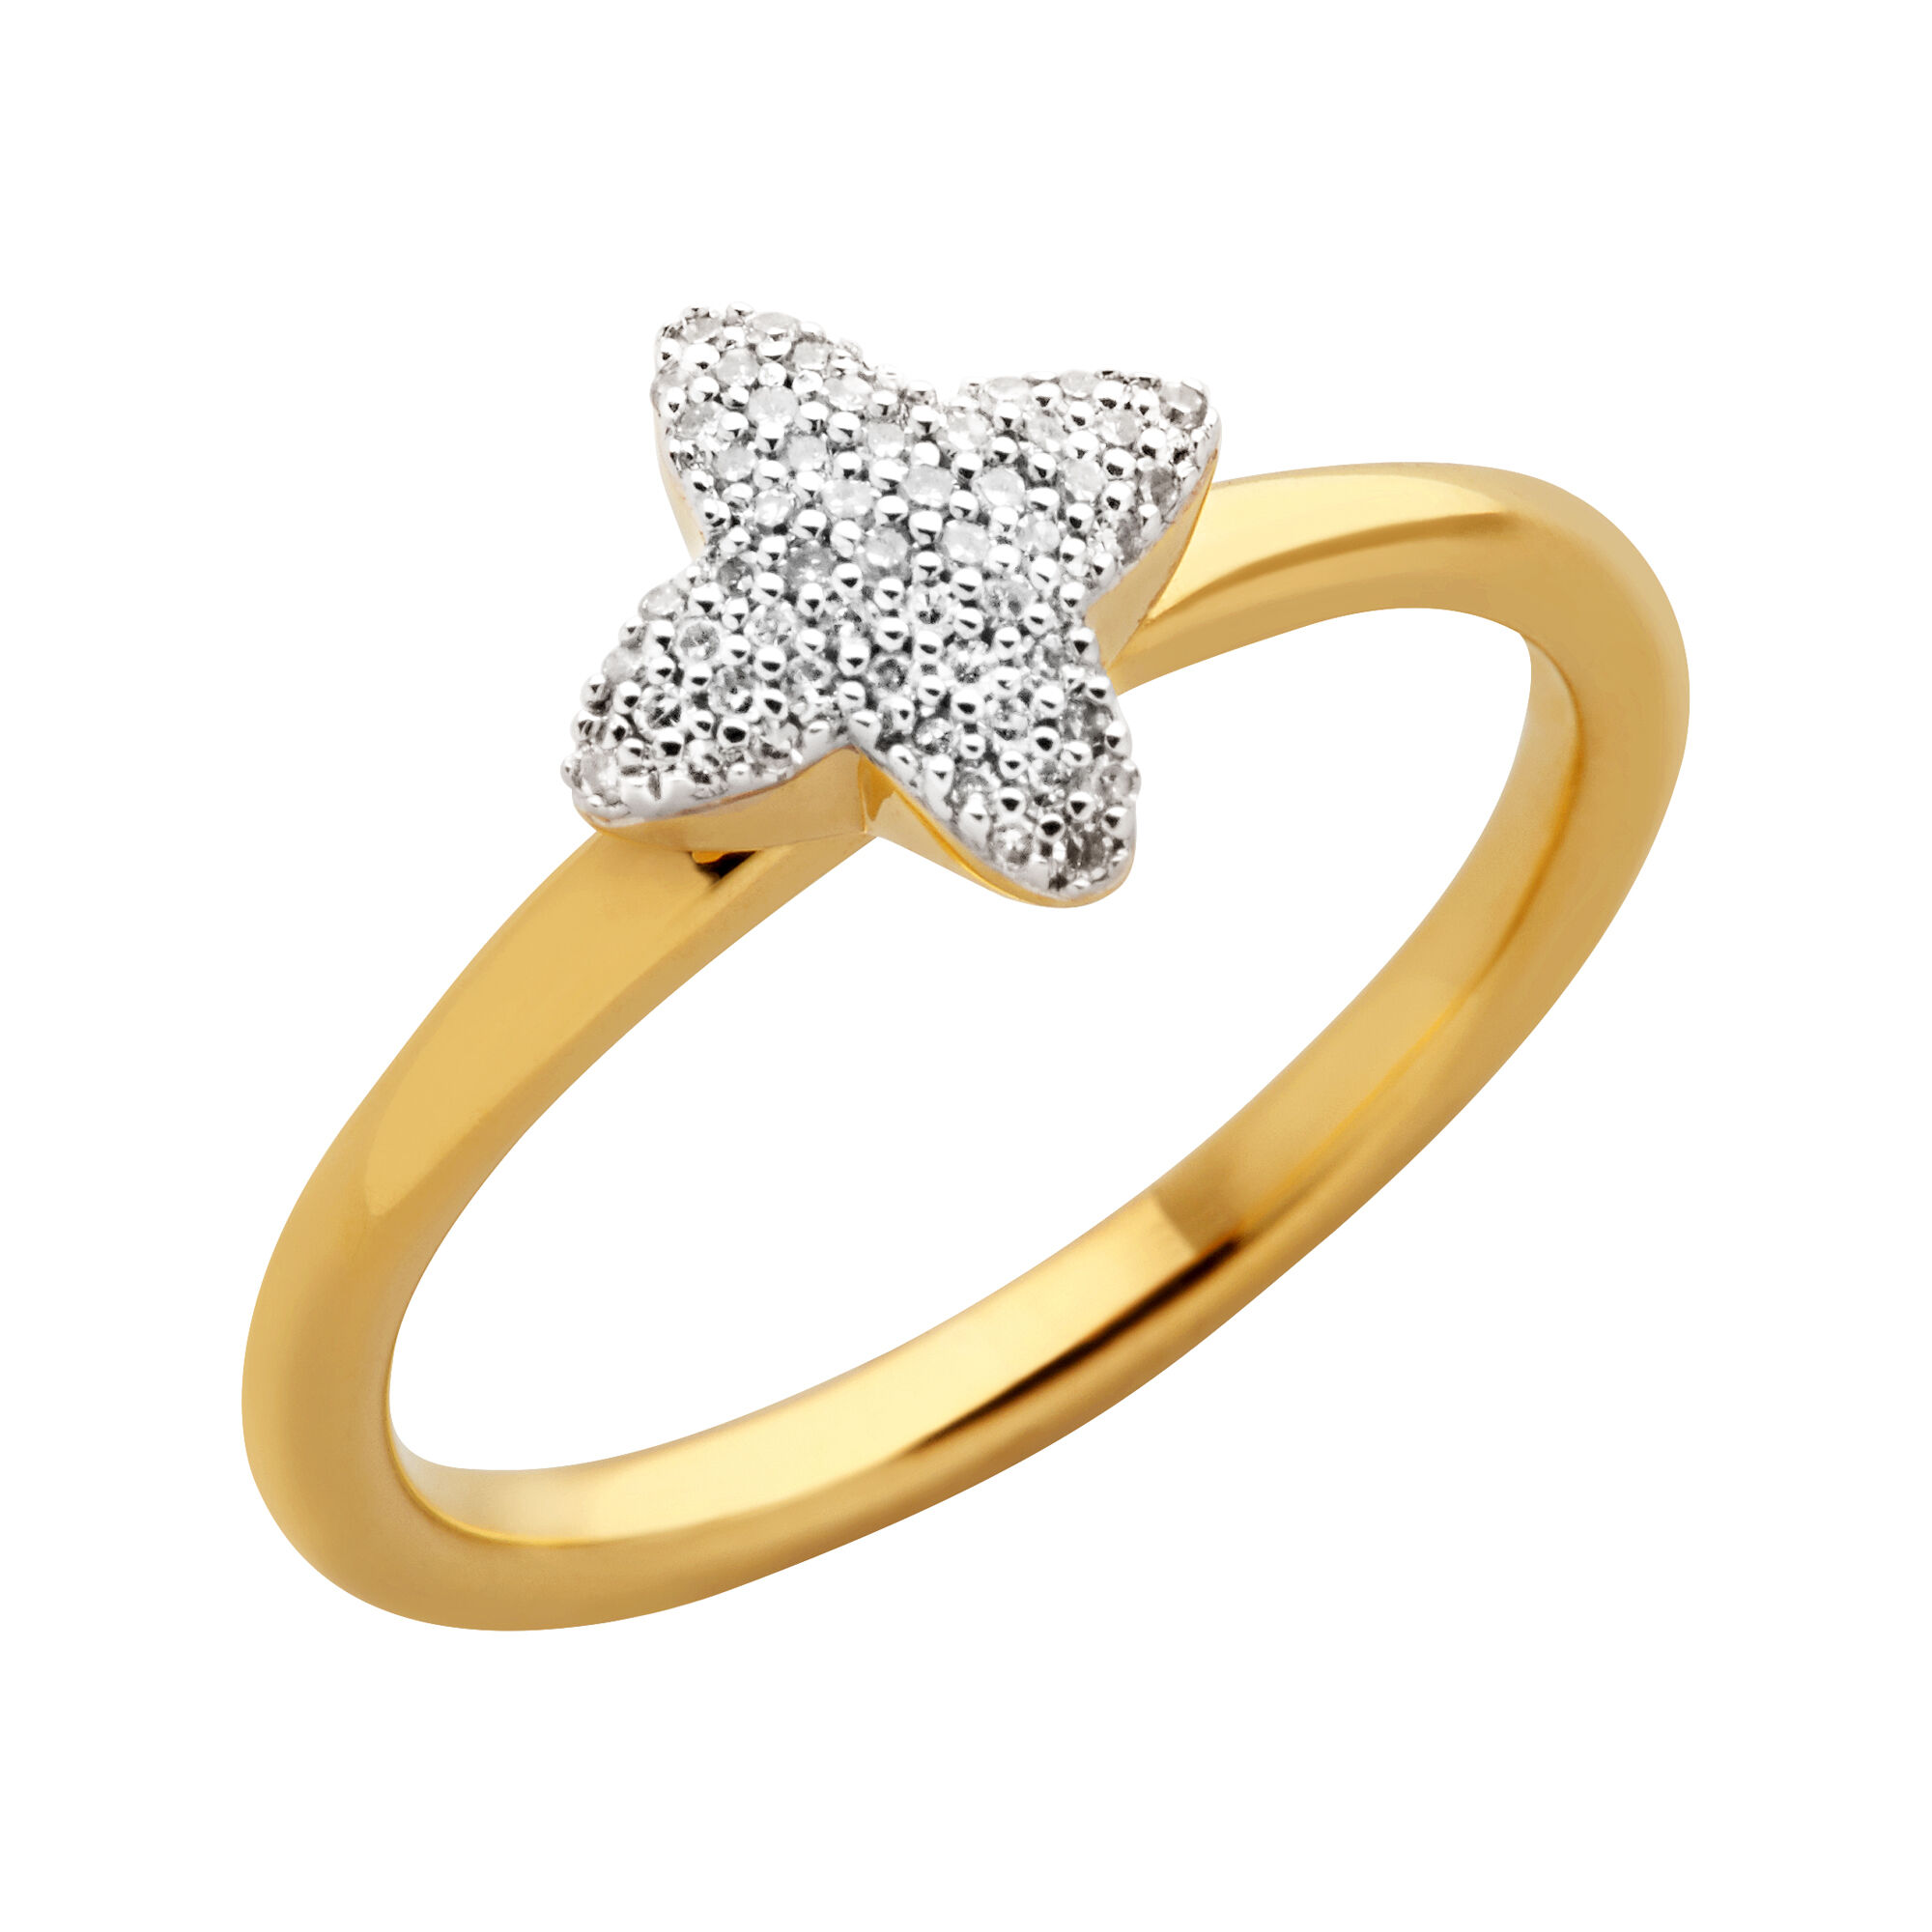 ring for women engagement rings gold jewellery white diamond